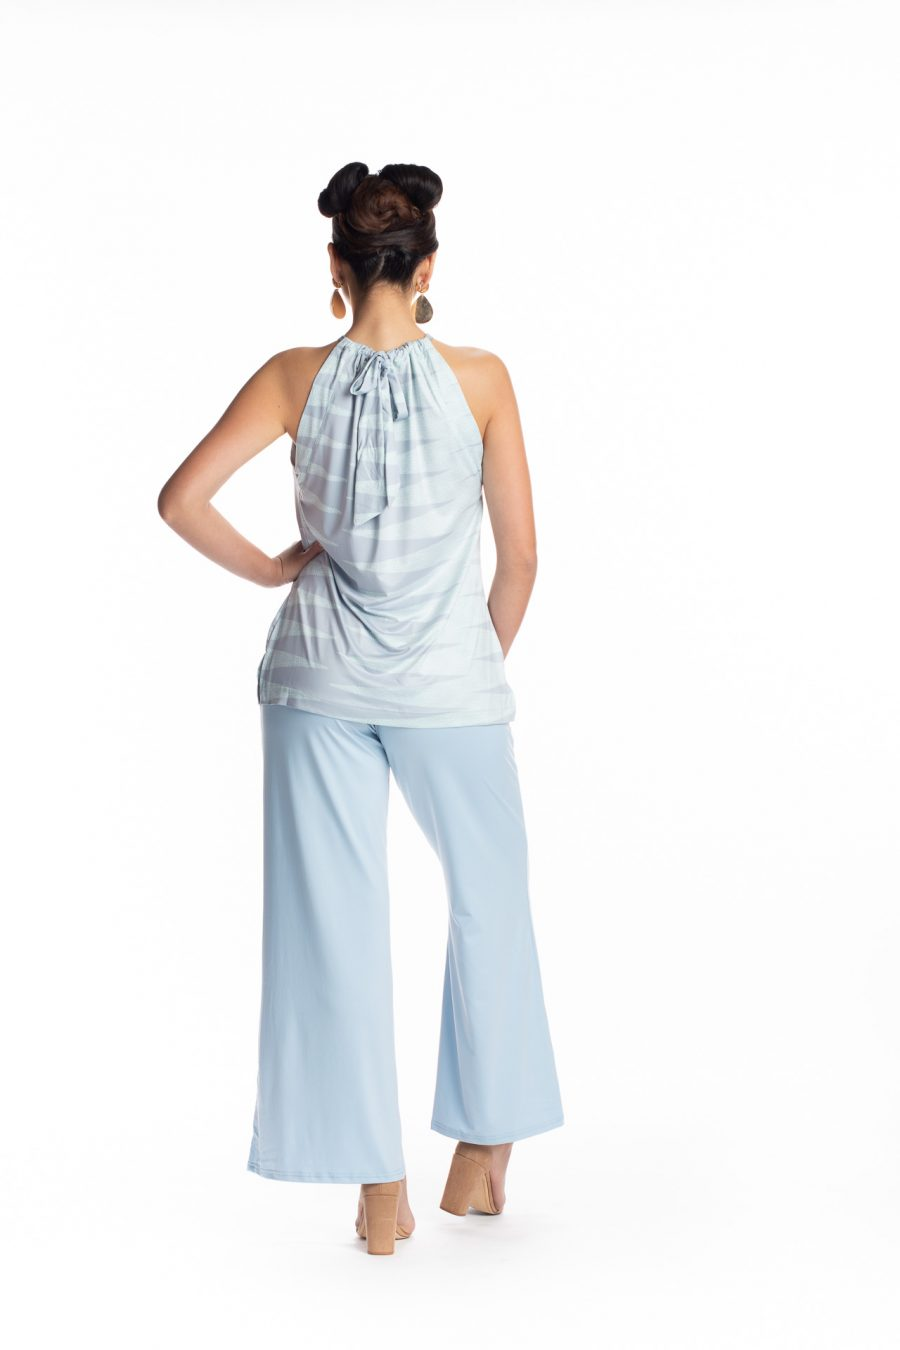 Female model wearing the Awapuhi Pants in Solid Indigo - Back View